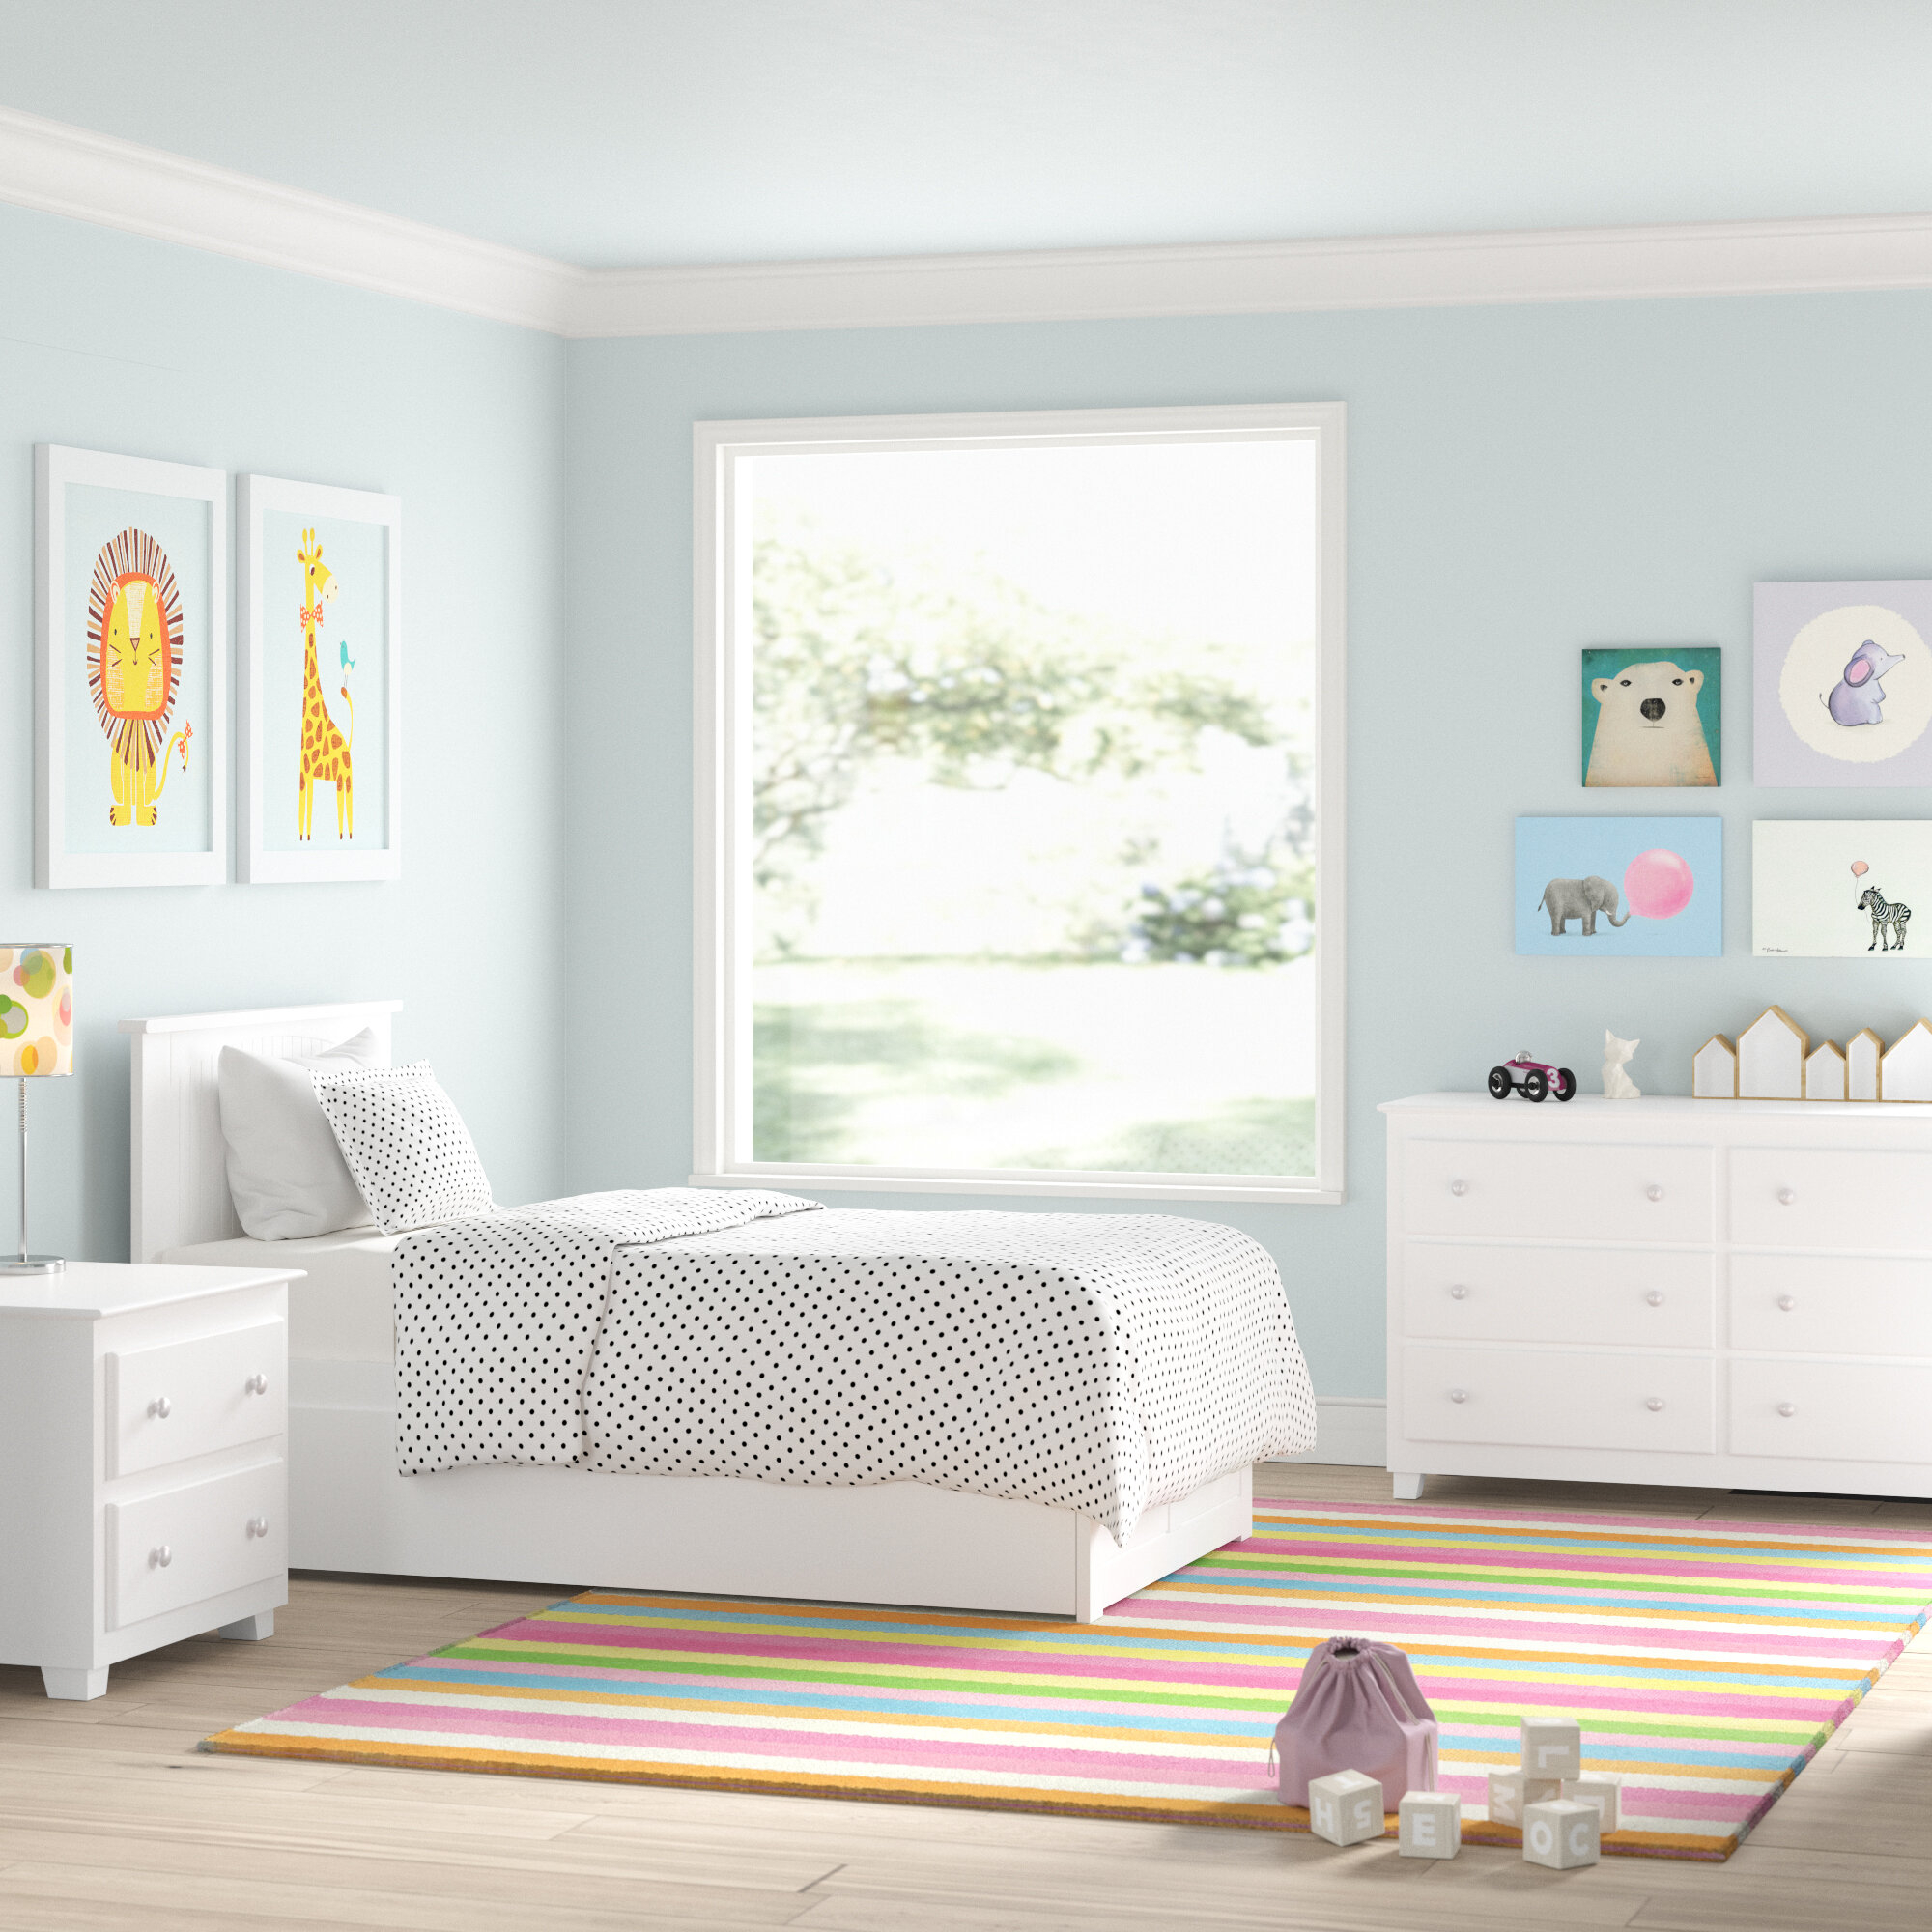 4 Expert Tips To Choose A Kids Bedroom Set Visualhunt